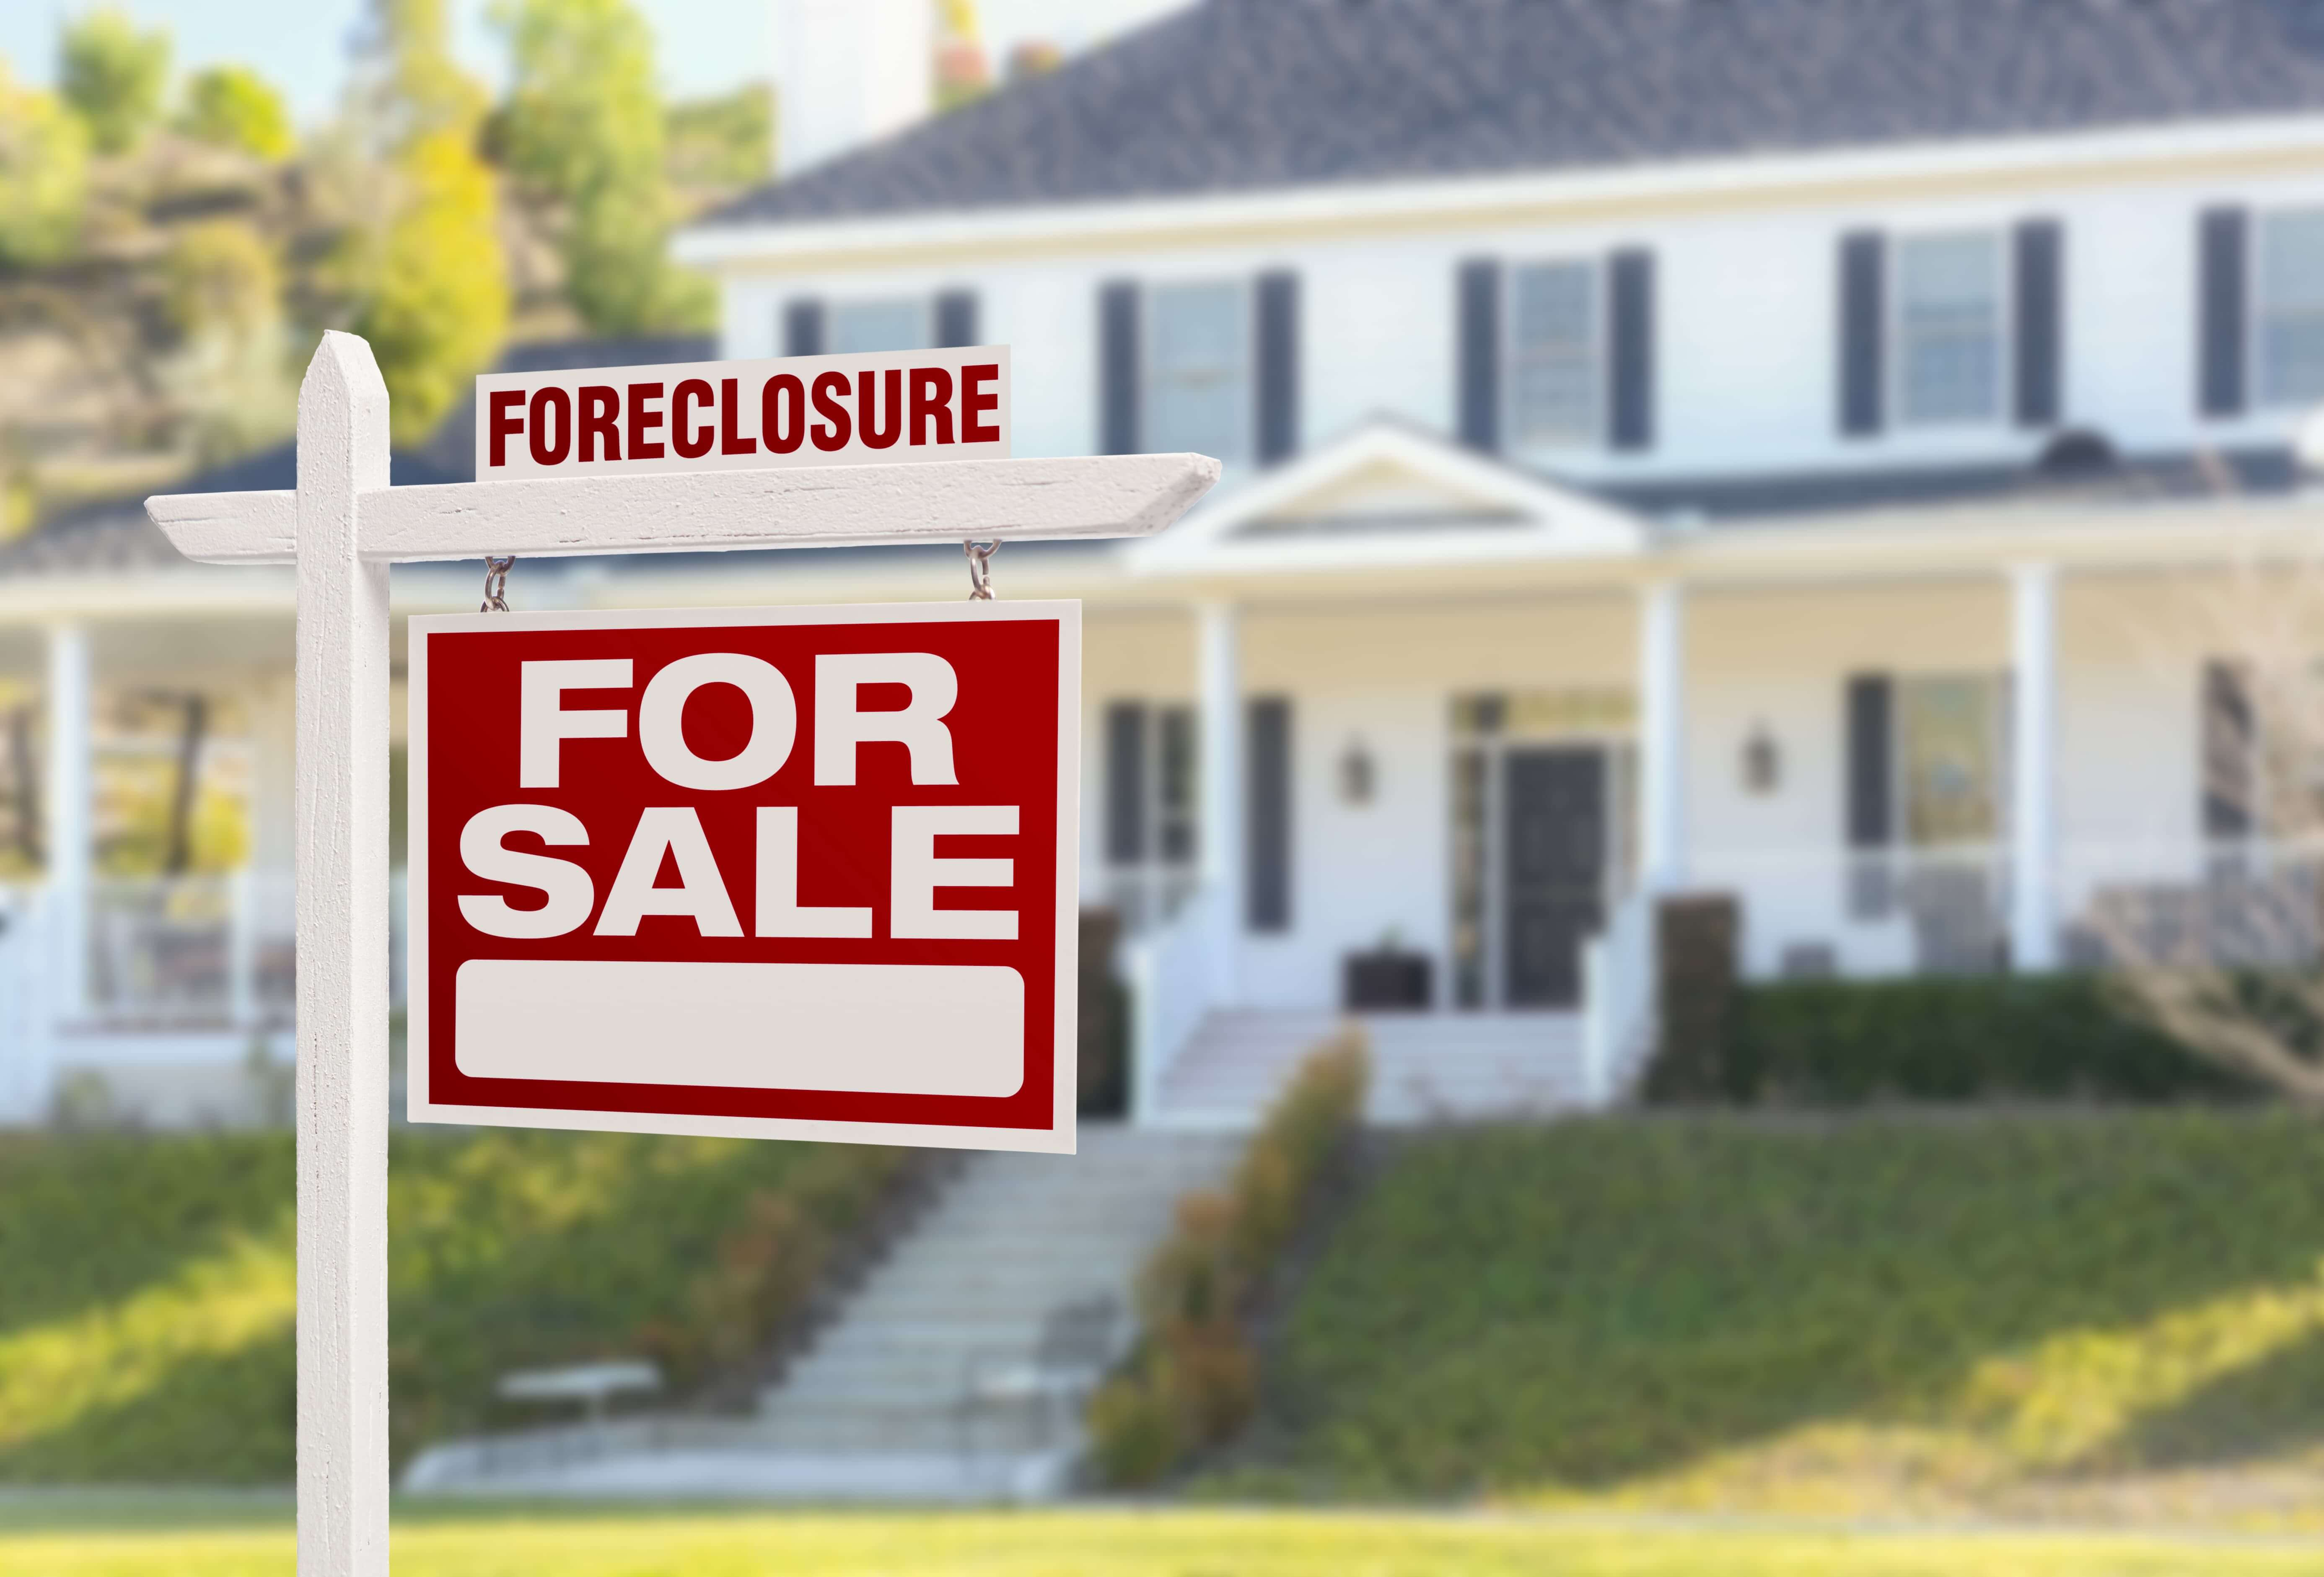 effects of foreclosure on homeowners